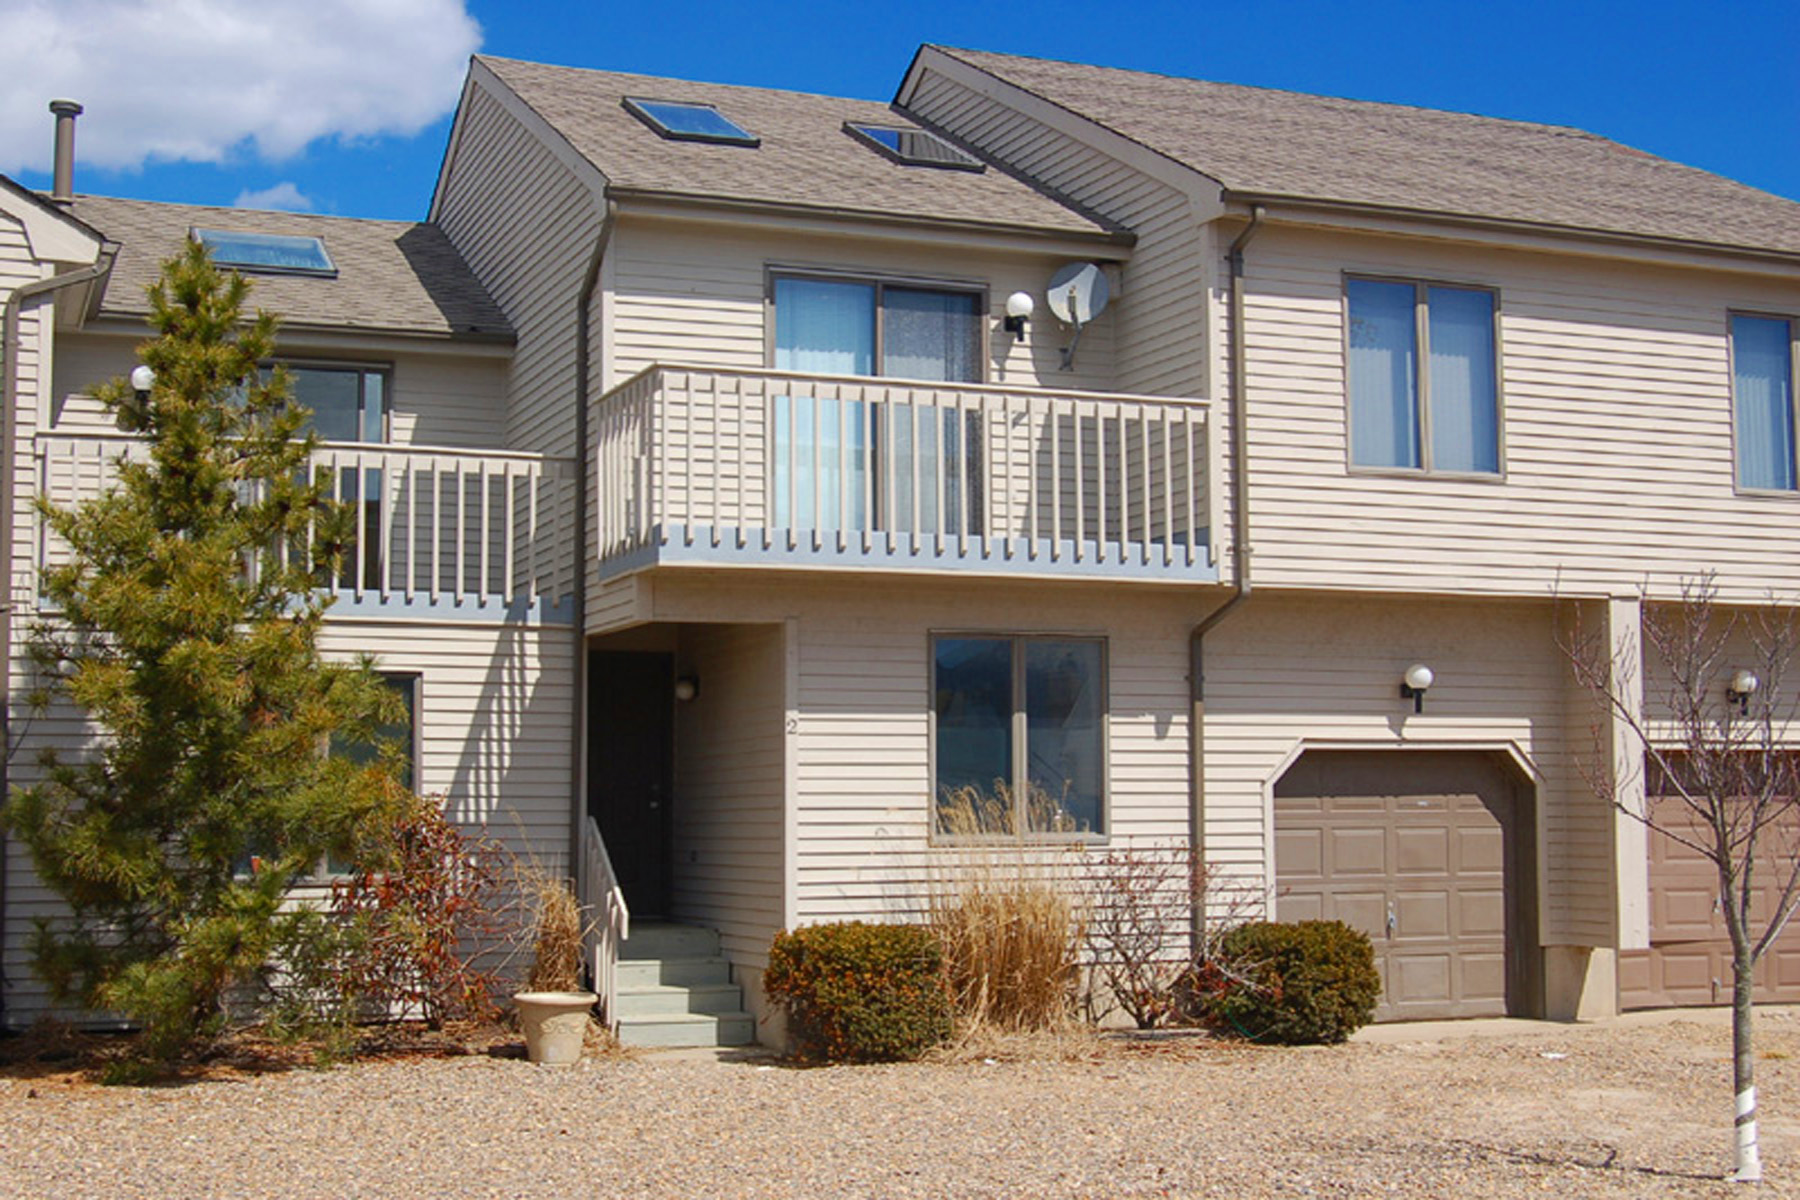 townhouses for Sale at Spacious Condo With Reverse Living 1807 Grand Central Avenue, Unit #2 Lavallette, New Jersey 08735 United States